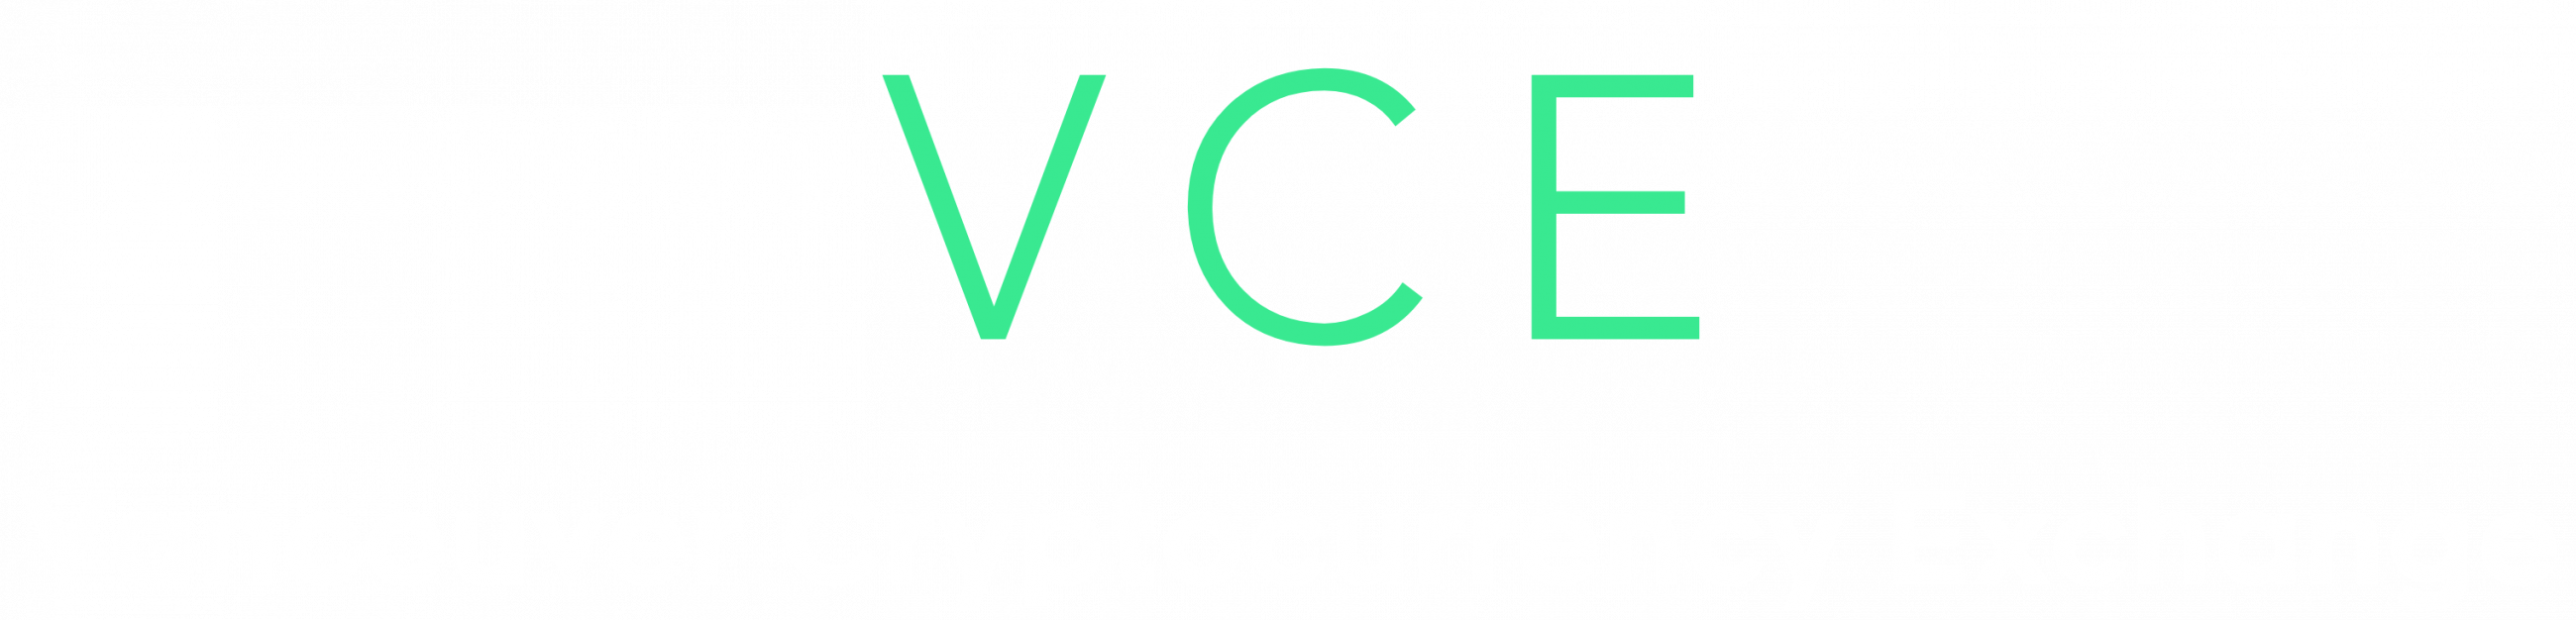 Vancouver Cryptocurrency Exchange